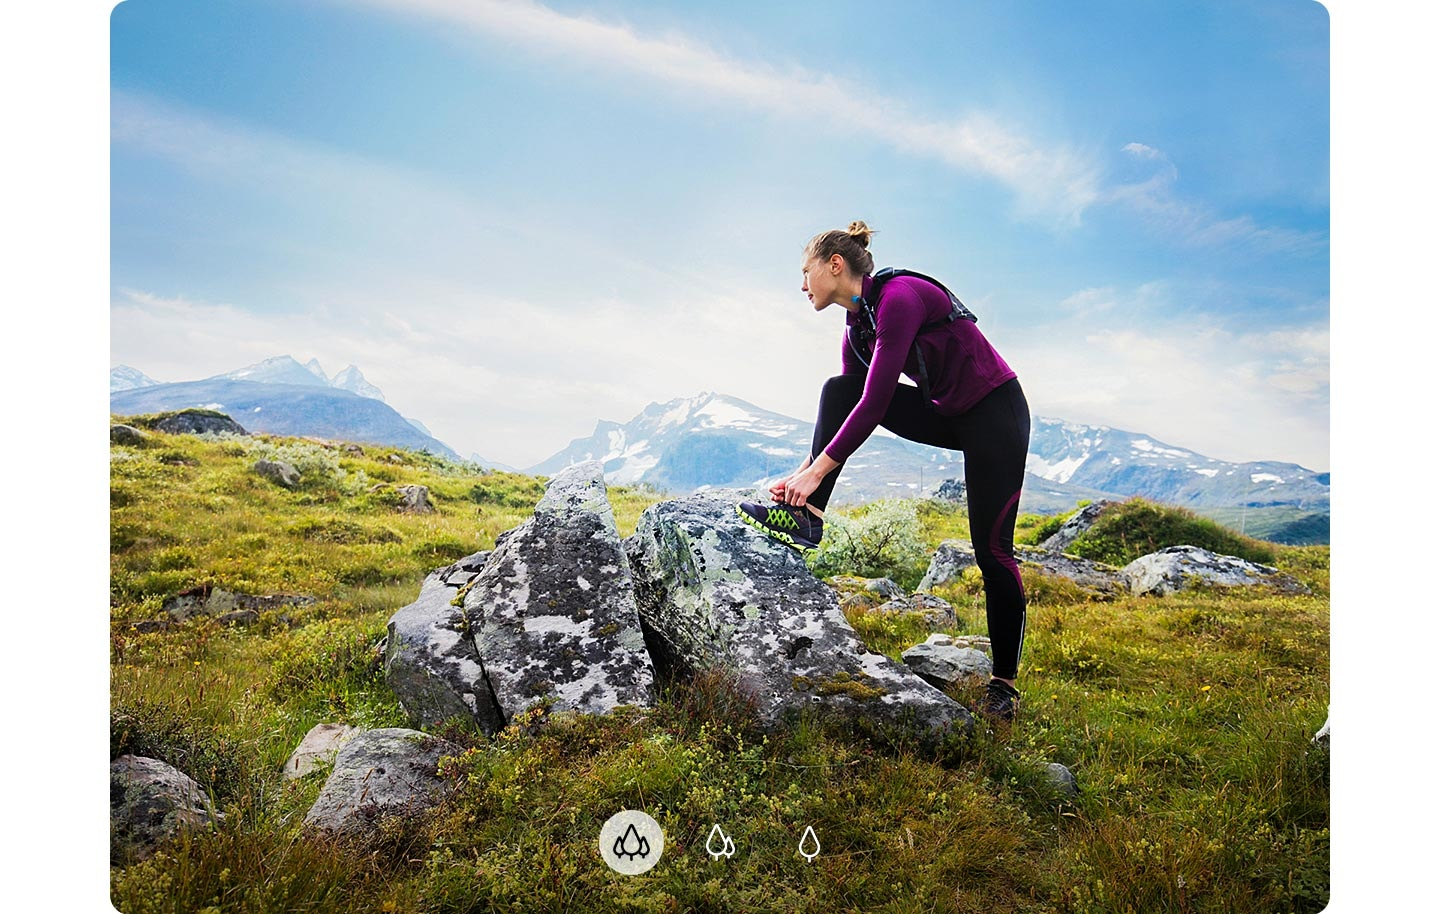 A woman staring at a distance with her foot on a rock and mountains shown in the background, indicating A72 can capture a wider image with Ultra Wide Camera.